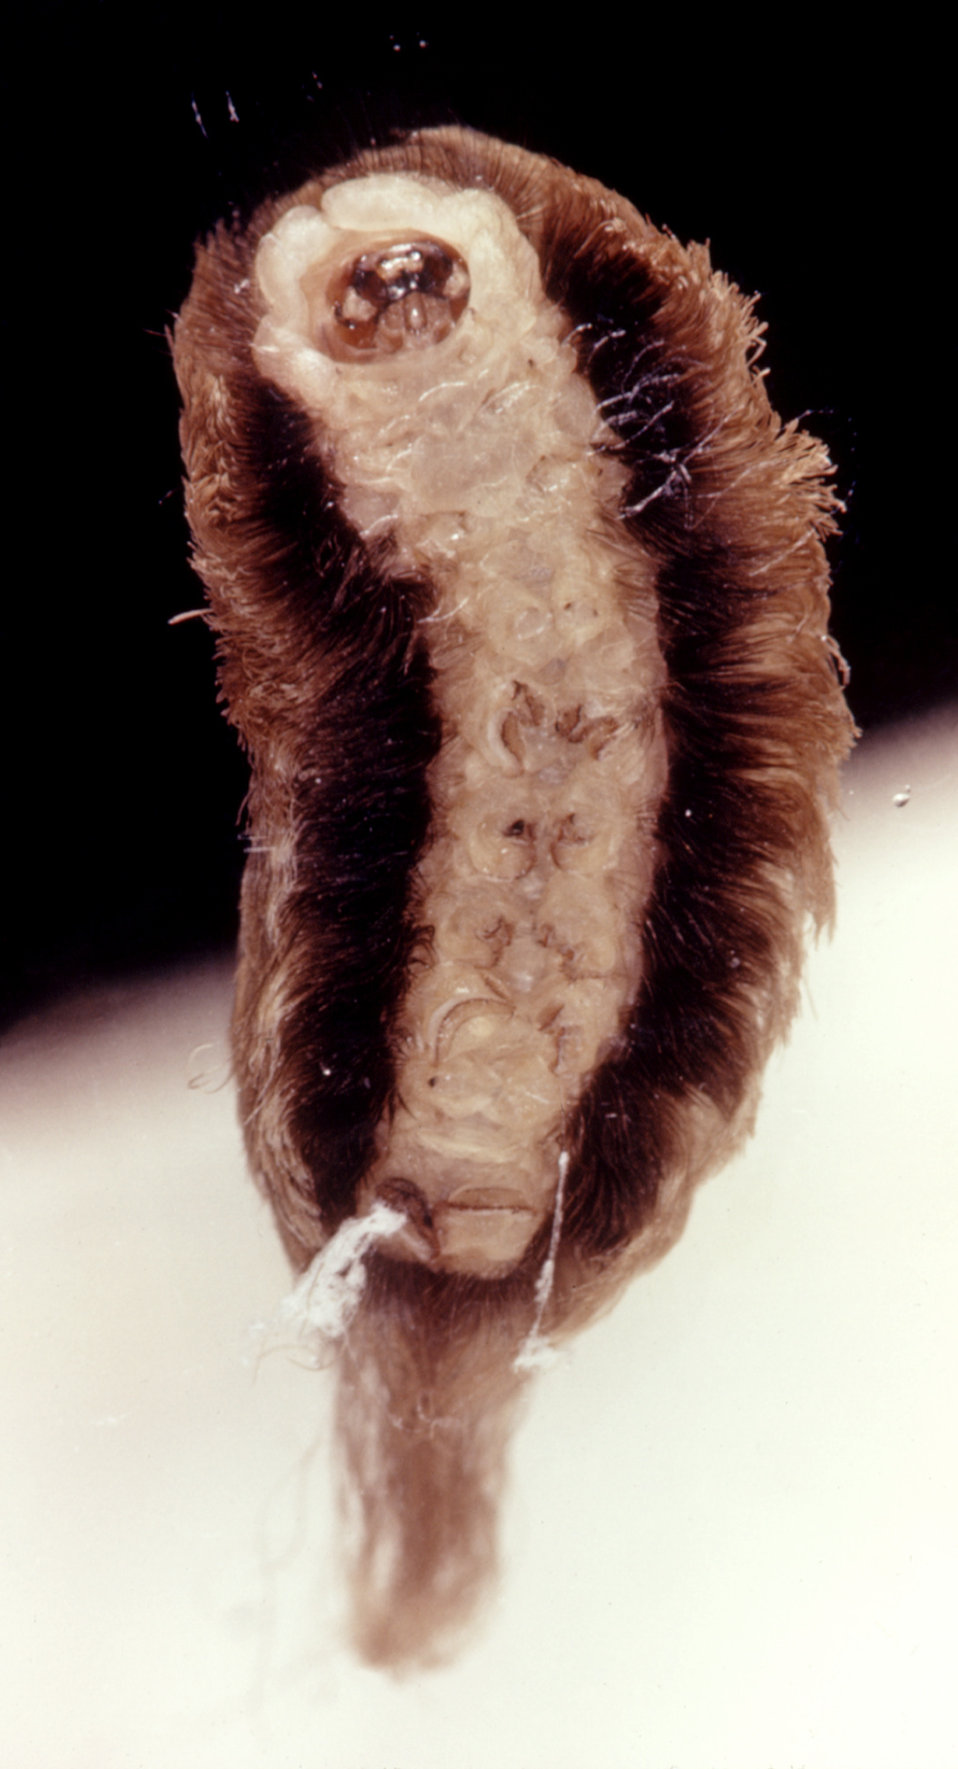 This is a ventral view of a puss caterpillar, Megalopyge opercularis, an urticating, or hive-producing caterpillar.